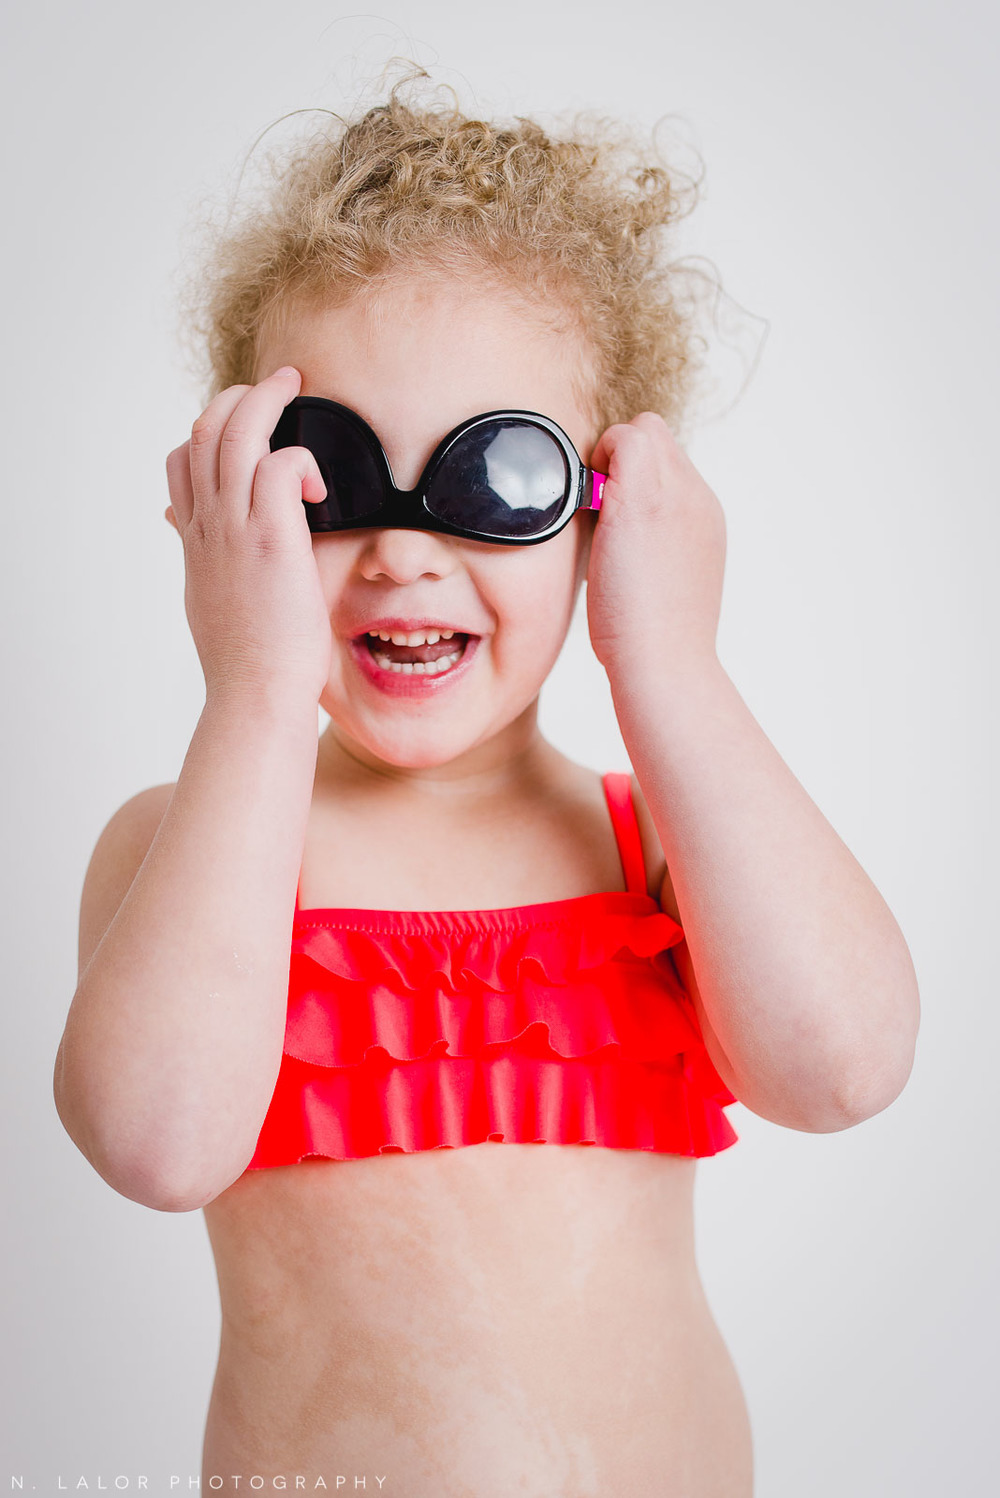 Simple and fun studio portrait of a 4-year old girl wearing a red swim suit and sunglasses. By N. Lalor Photography. Greenwich, CT.